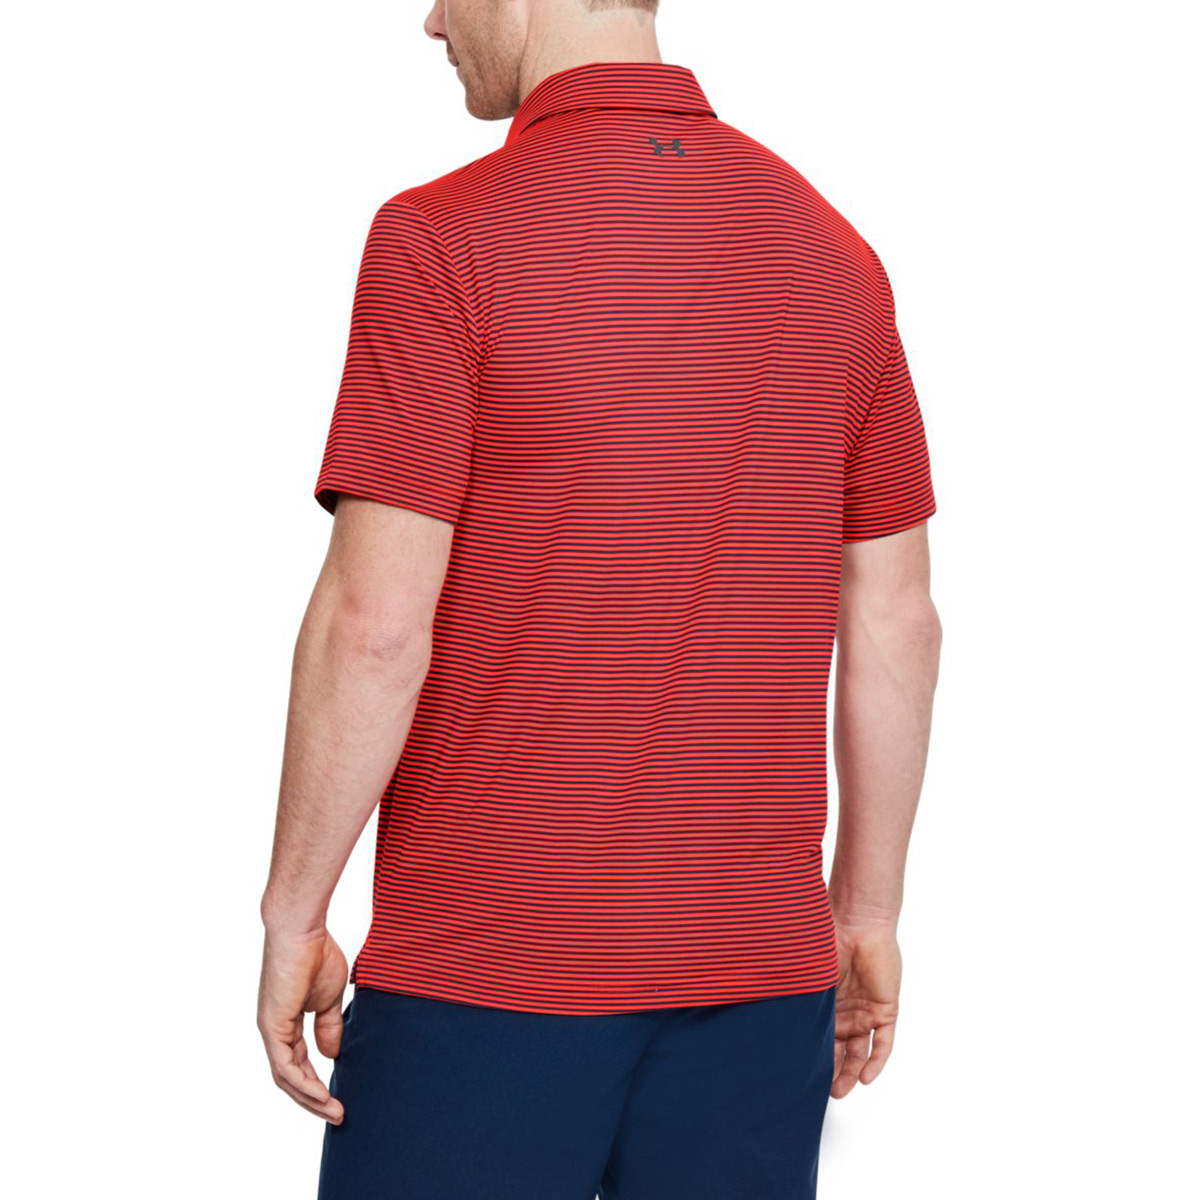 Under-Armour-Mens-UA-Playoff-Performance-Golf-Polo-Shirt-42-OFF-RRP thumbnail 32